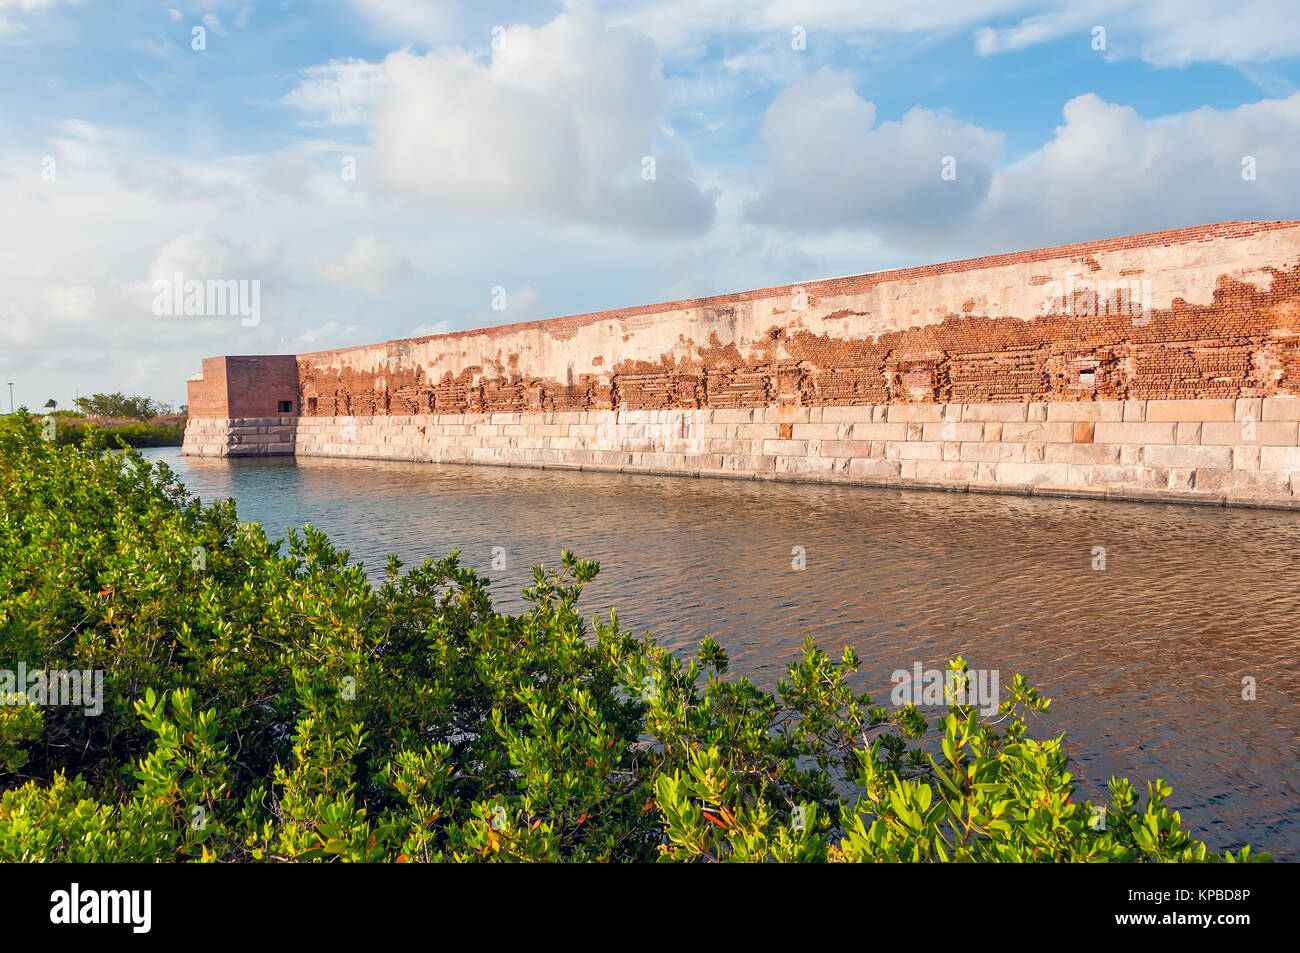 Fort Zachary Taylor Historic State Park moat and walls, Key West Florida - Stock Image